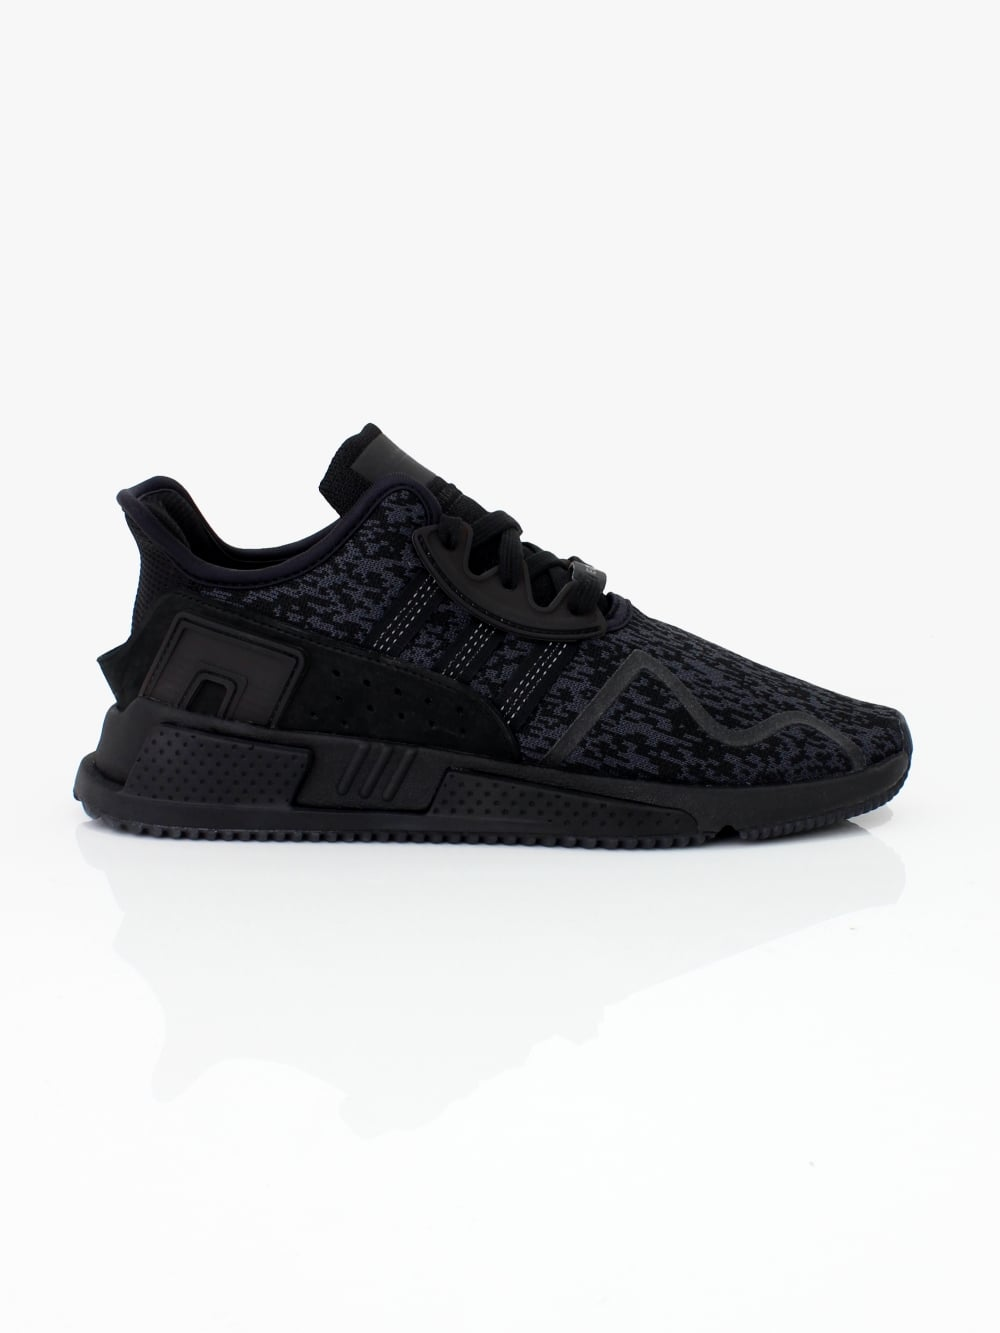 0359057cd66f25 adidas EQT Cushion ADV in Black Black - Northern Threads